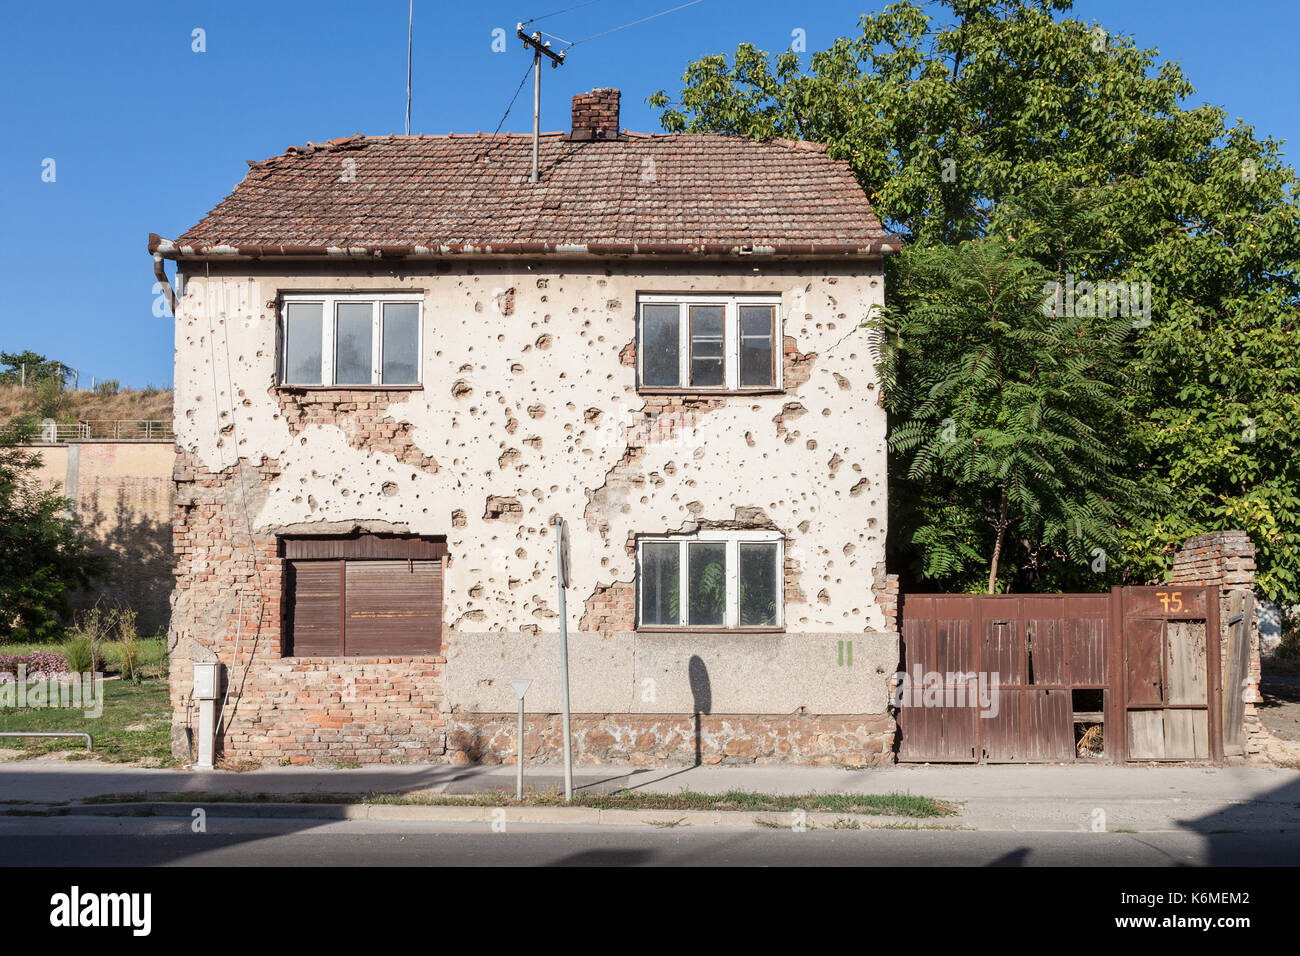 Half ruined and damaged house in the center of Vukovar, Croatia. The city became one of the centers of the 1991-1995 conflict between Serbia and Croat - Stock Image